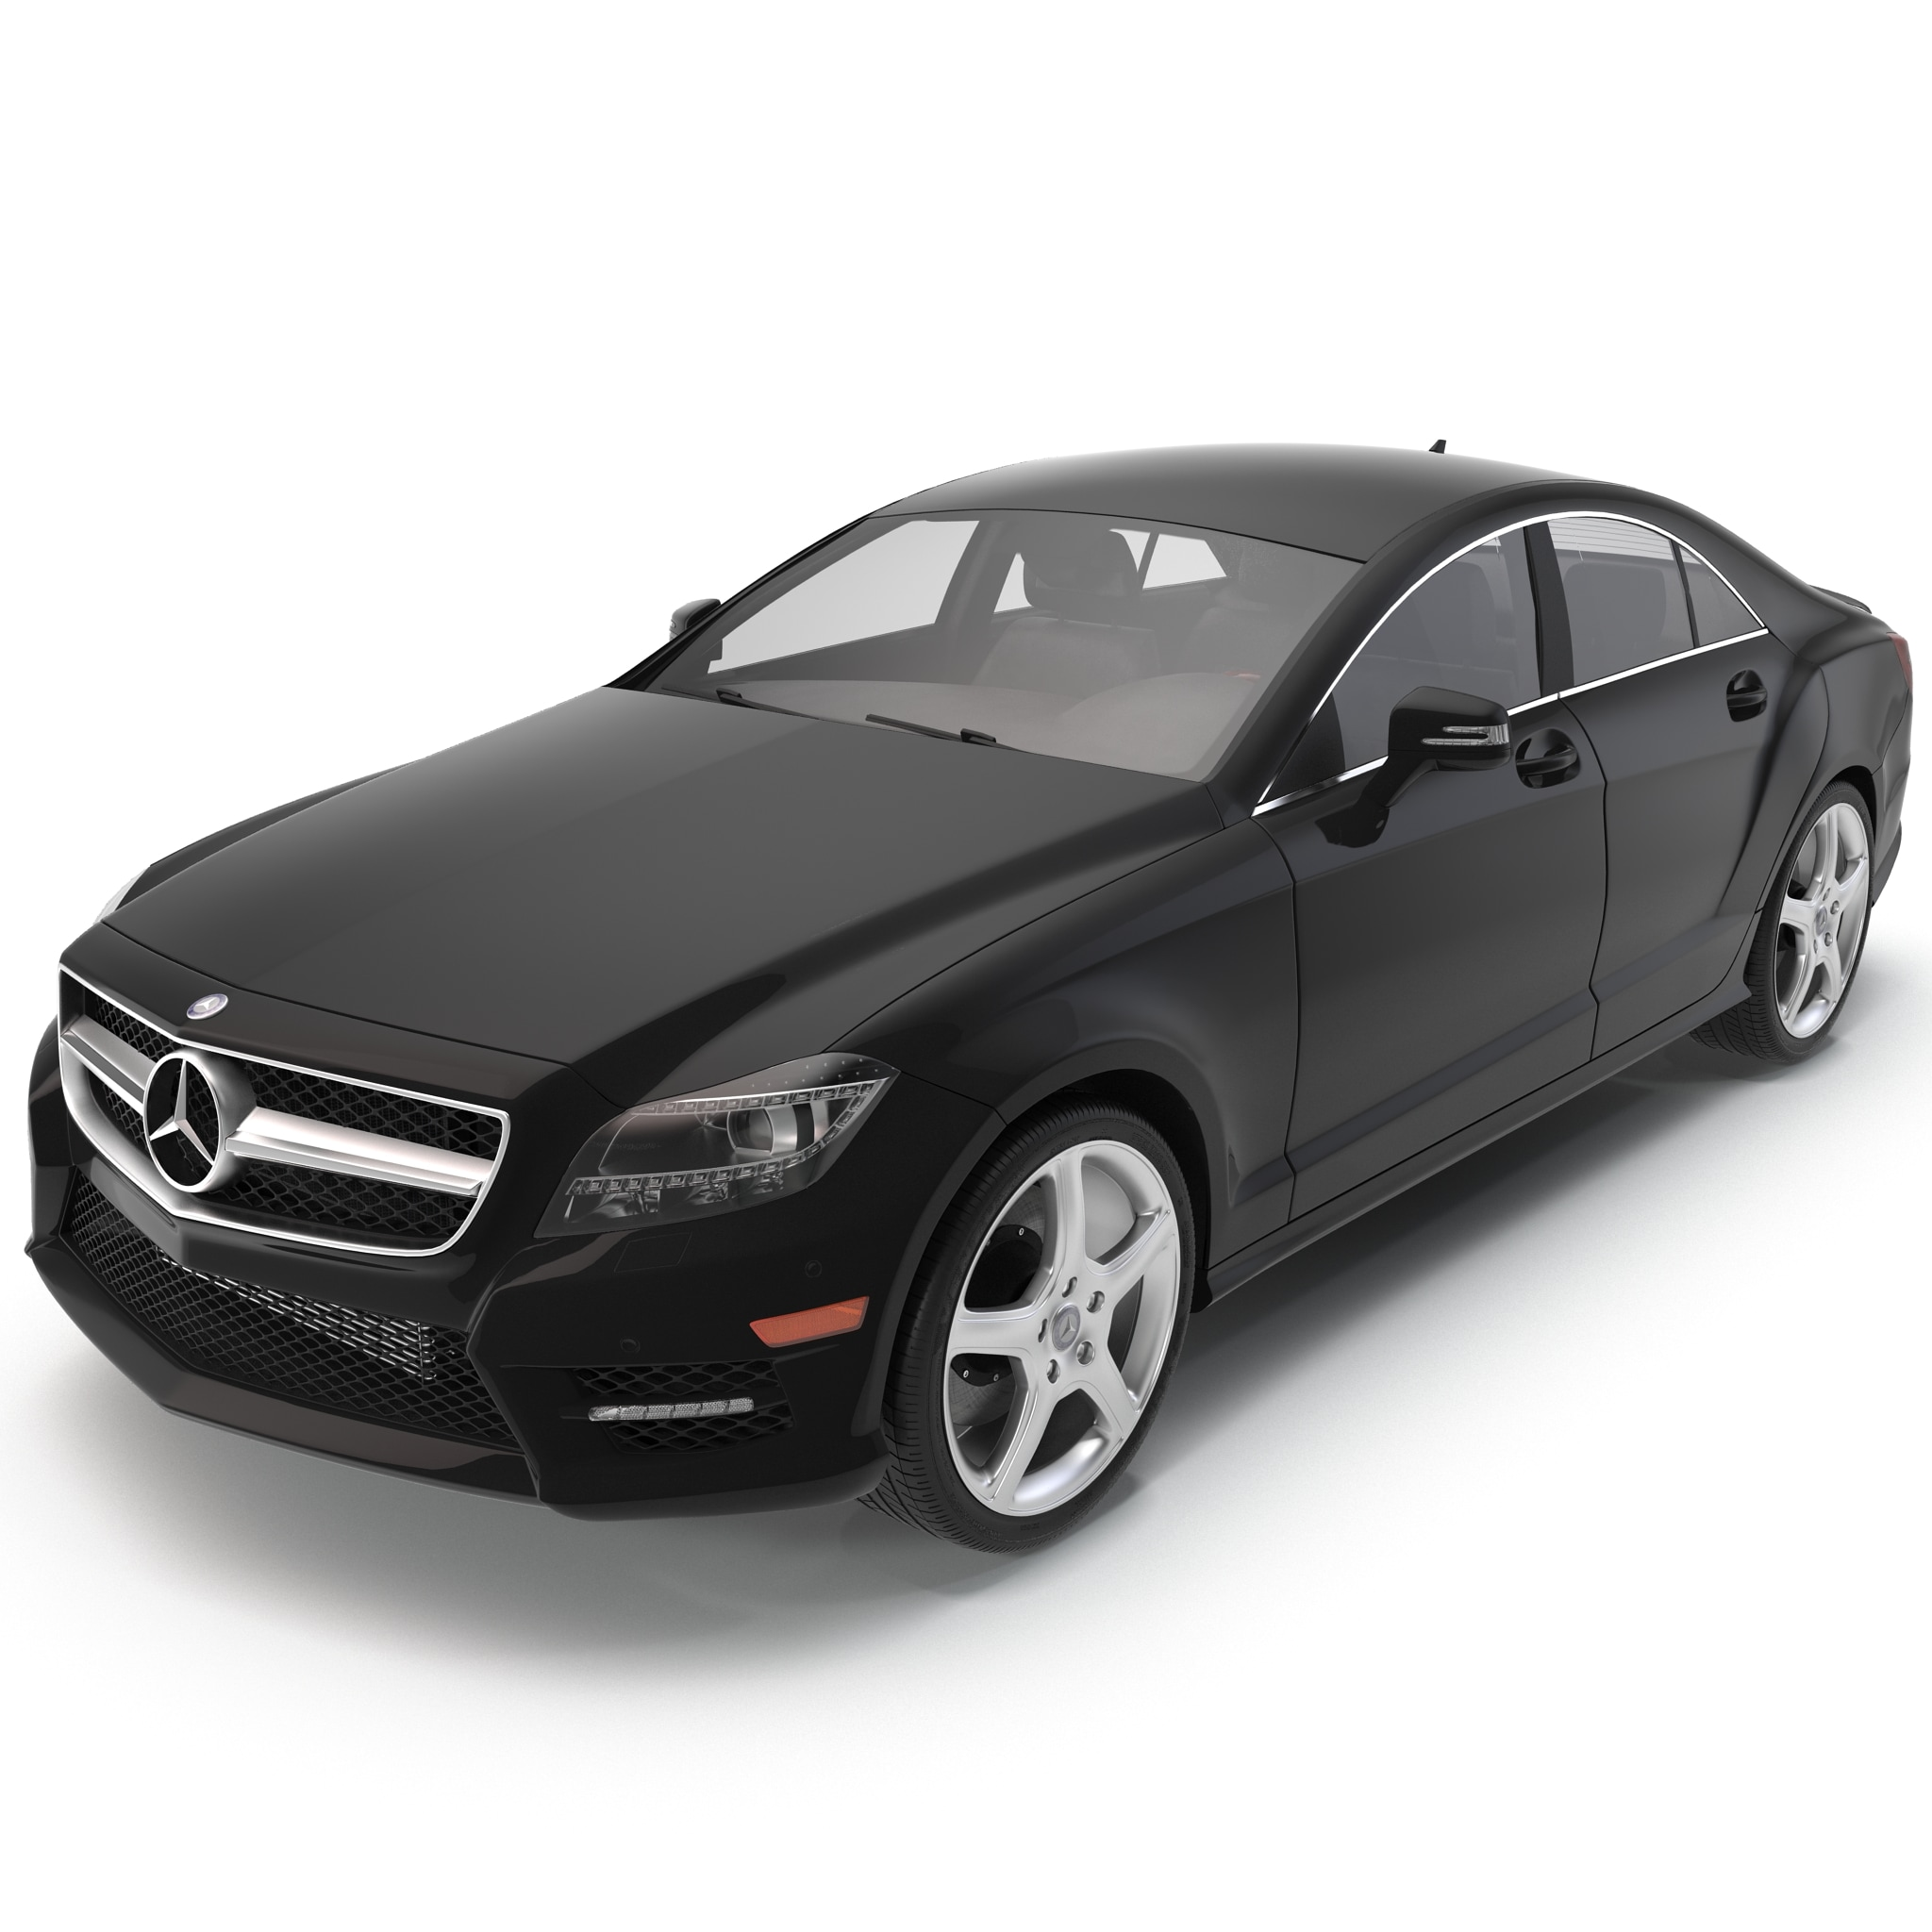 Mercedes benz cls class coupe 2014 3d model for Mercedes benz c class models